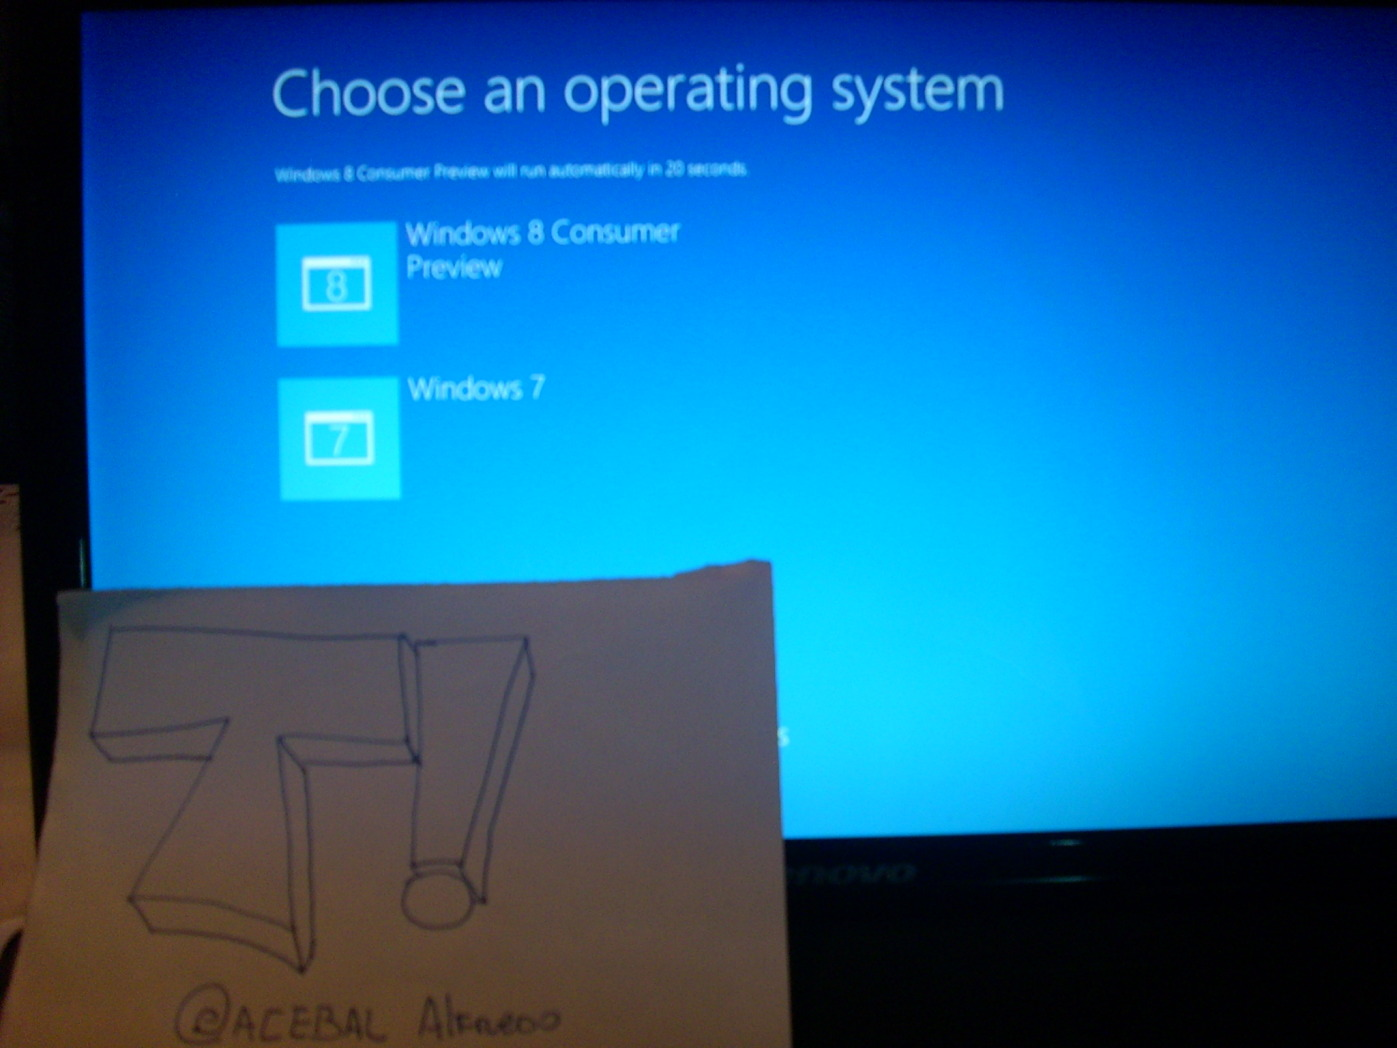 Easybcd 2.2 windows 8 dual booting and more